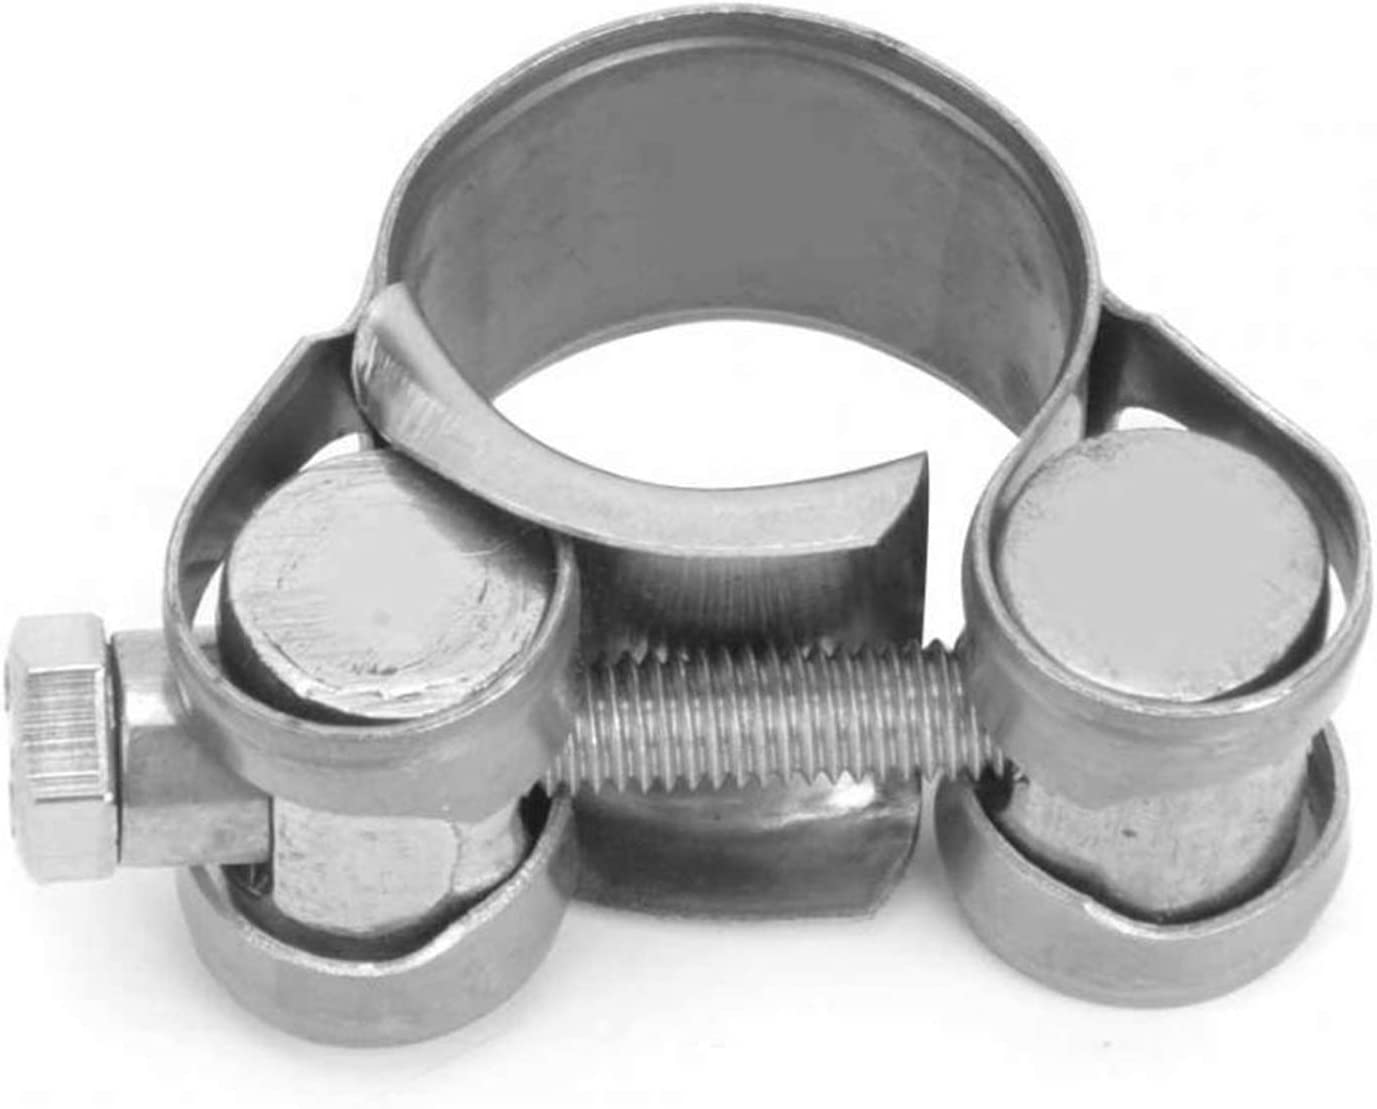 Cheap bargain 5pcs Ultra Thin Stainless Branded goods Steel Clamp T-Bolt Support Clip 1 Ring